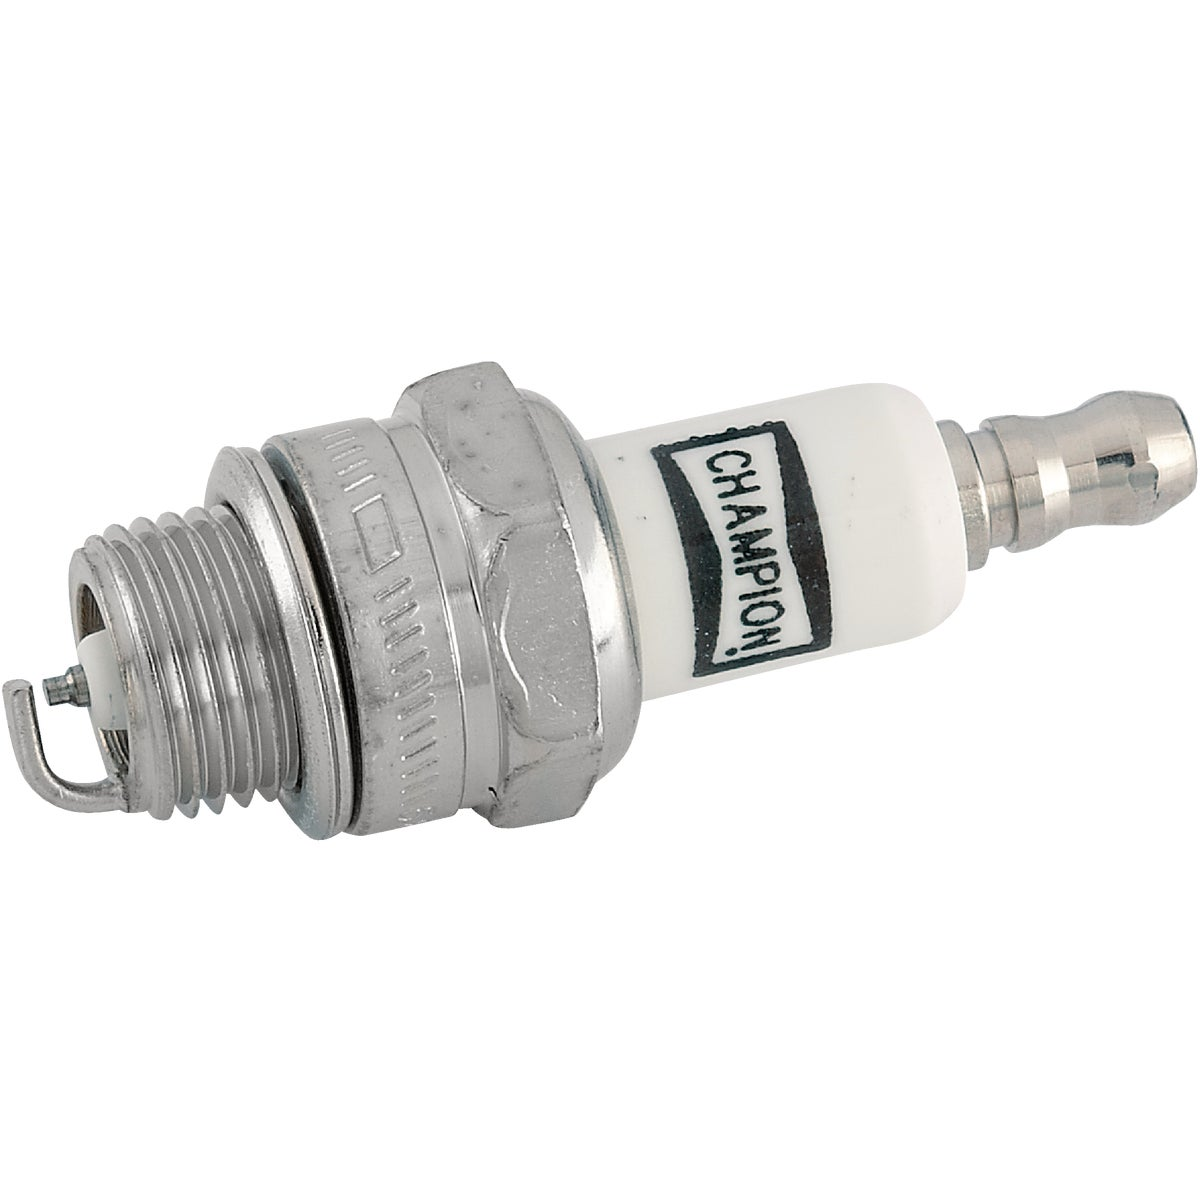 CJ8 ETCEZSTRT SPARK PLUG - 5843 by Federal Mogul